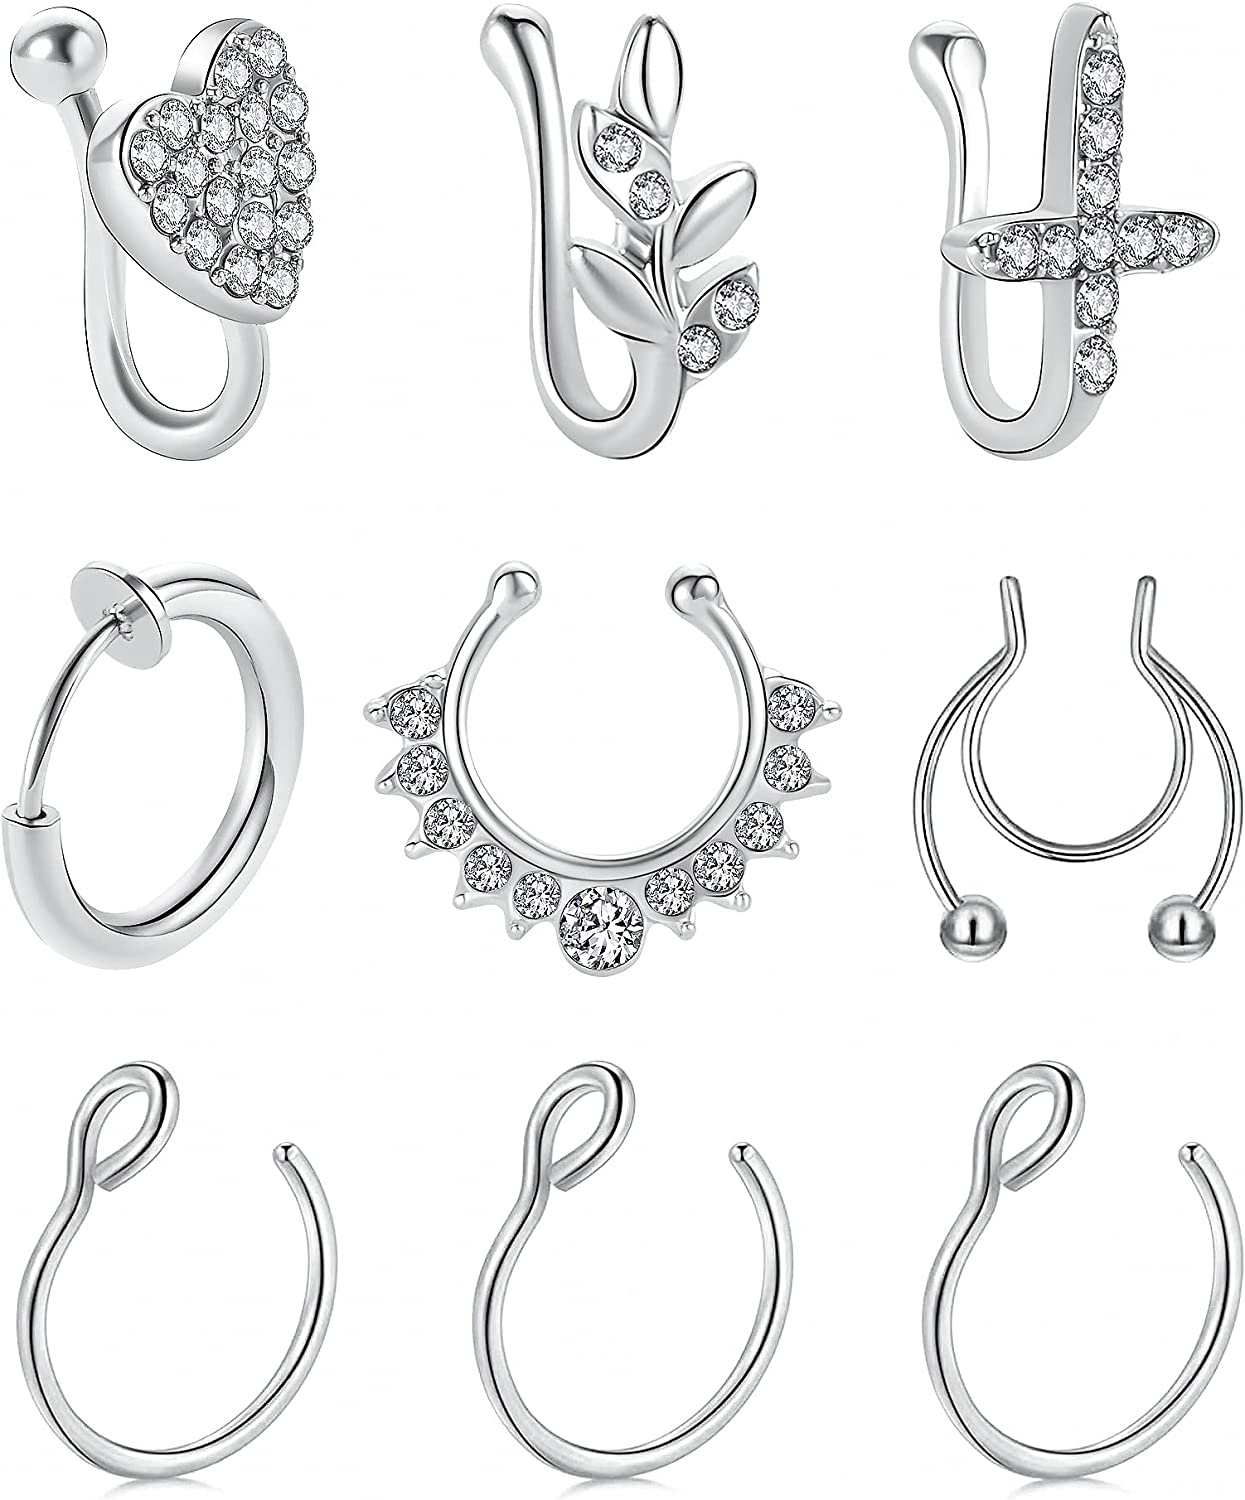 MOROTOLE Fake Nose Rings Magnet Septum Ring Faux Magnetic Septum Nose Ring 16G 316L Surgical Steel Non-Piercing Horseshoe Septum Nose Rings